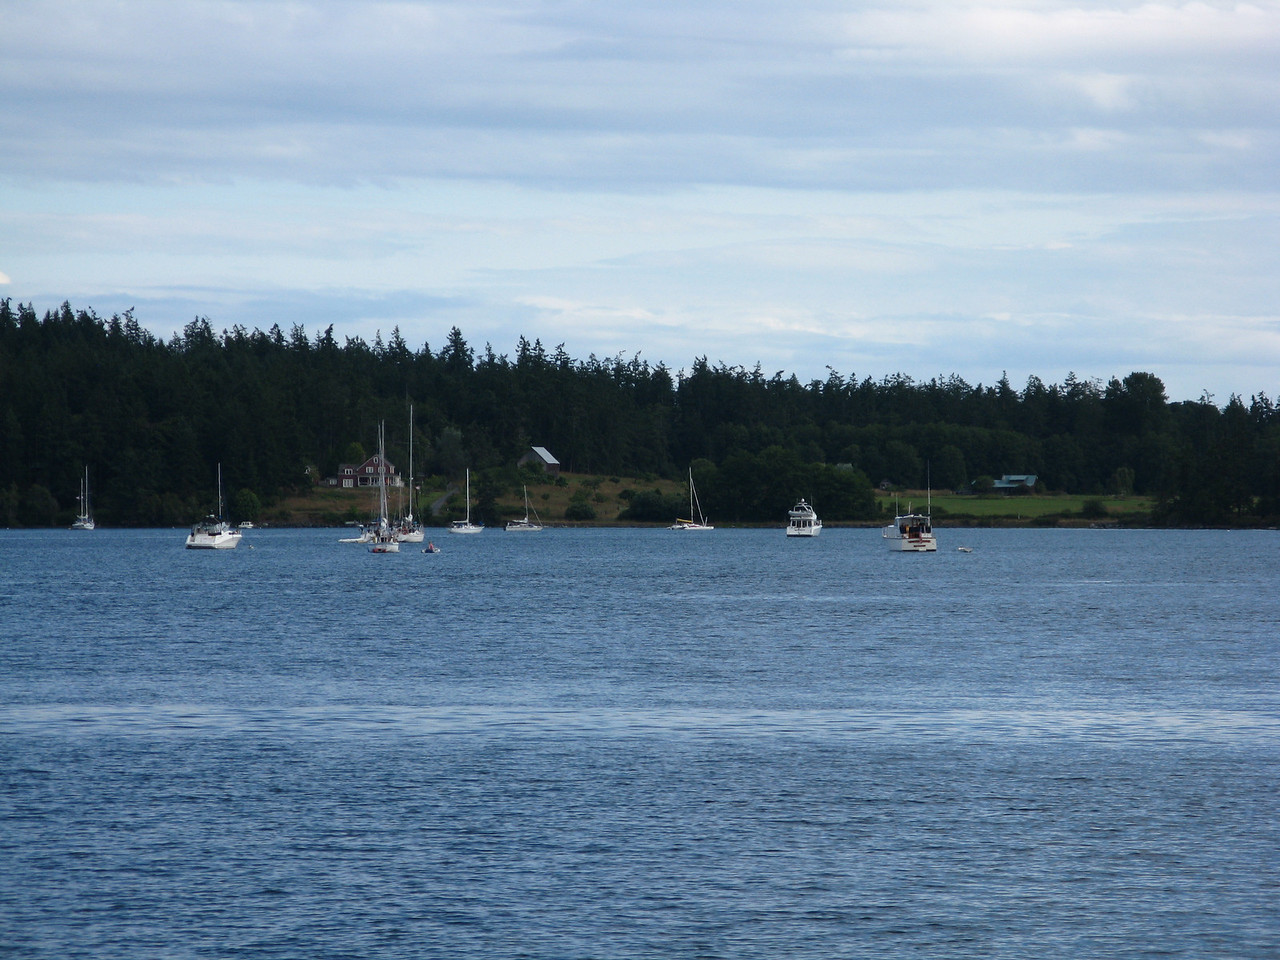 Blind Bay, across from Orcas ferry landing, Shaw Island, looking south.